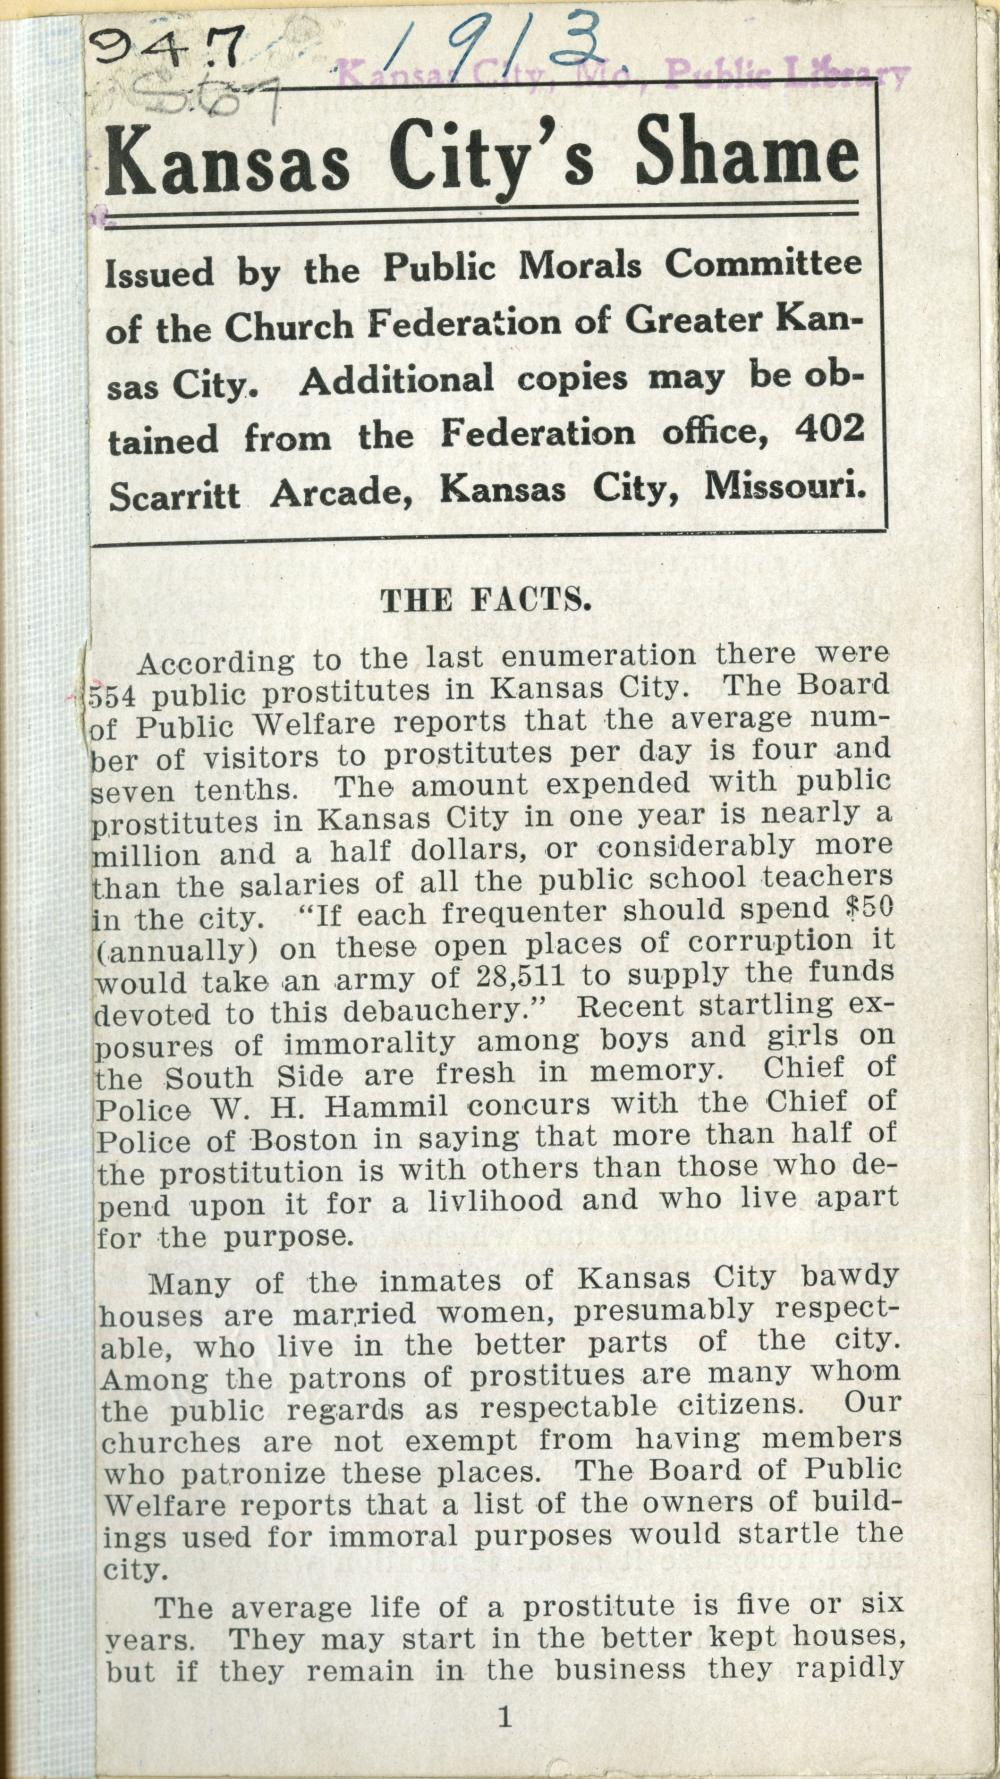 Kansas City's Shame, 1913 pamphlet on vice in Kansas City